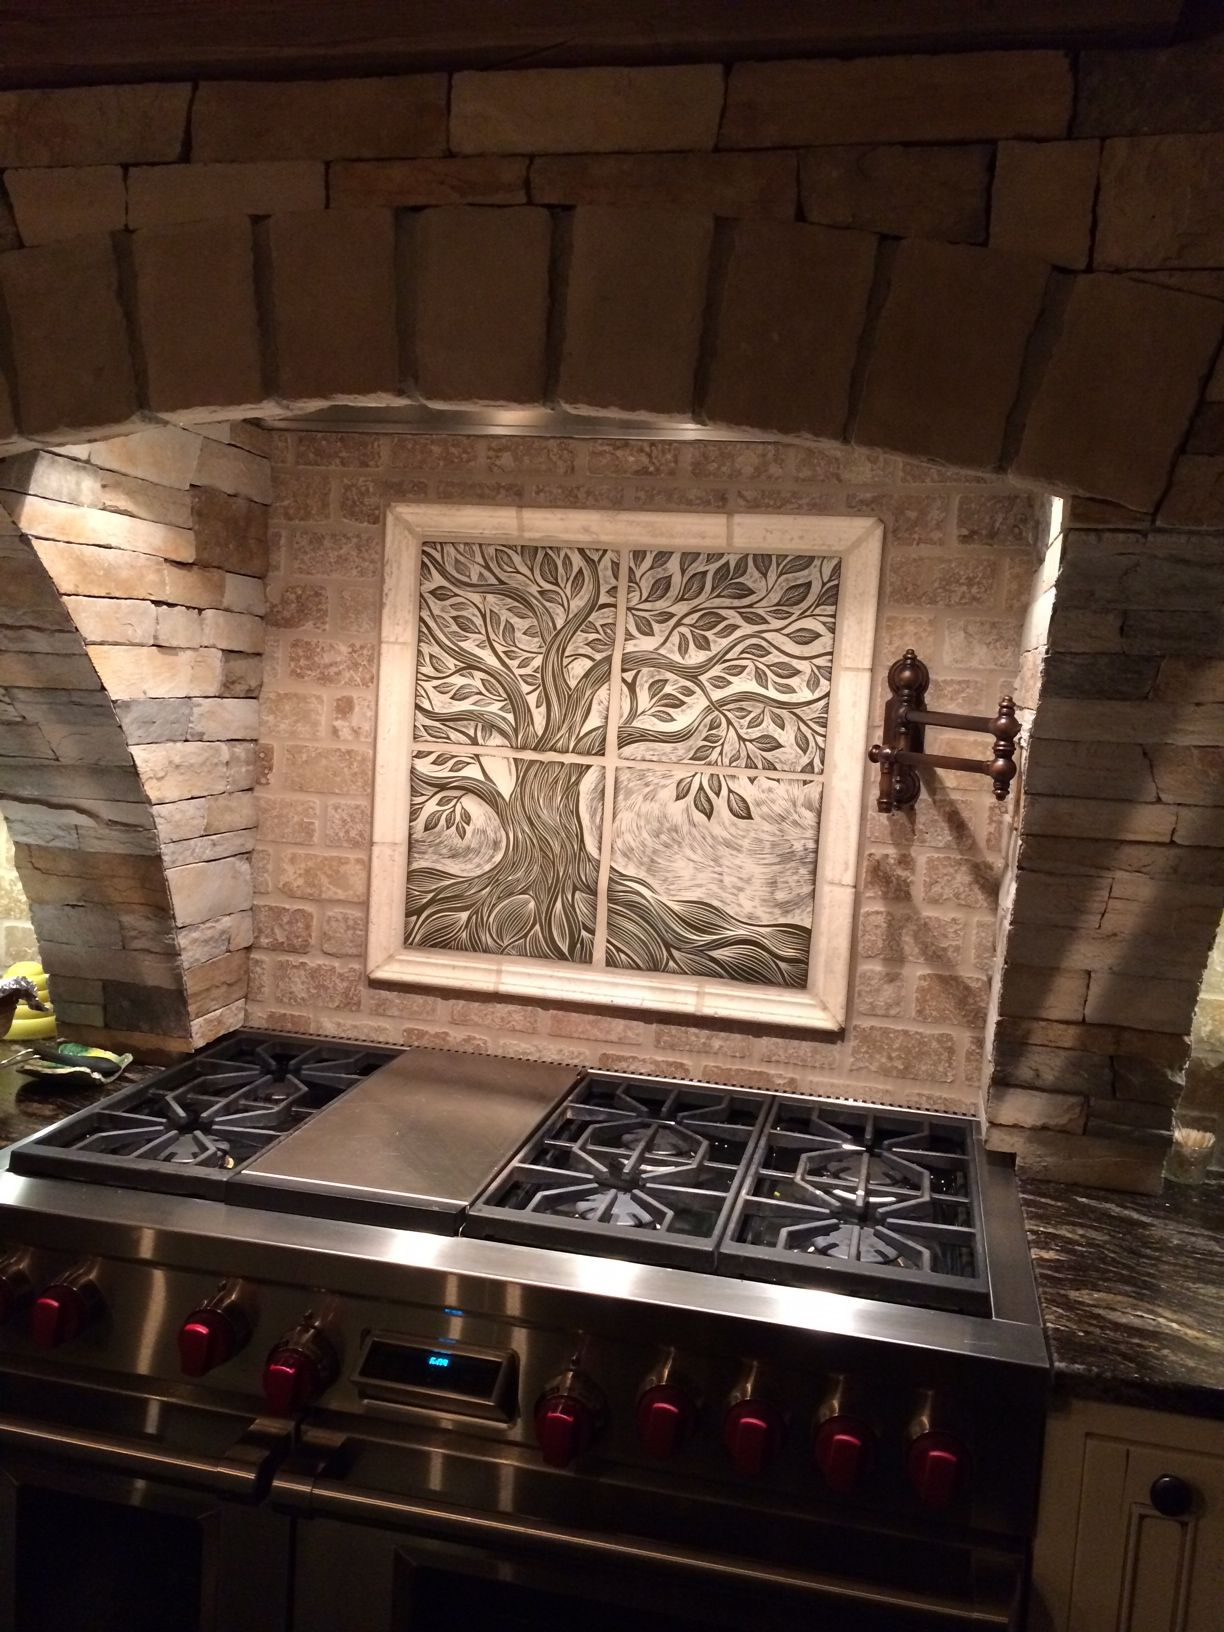 This is a custom 24 x 24 sculptural ceramic backsplash for Custom mural tiles